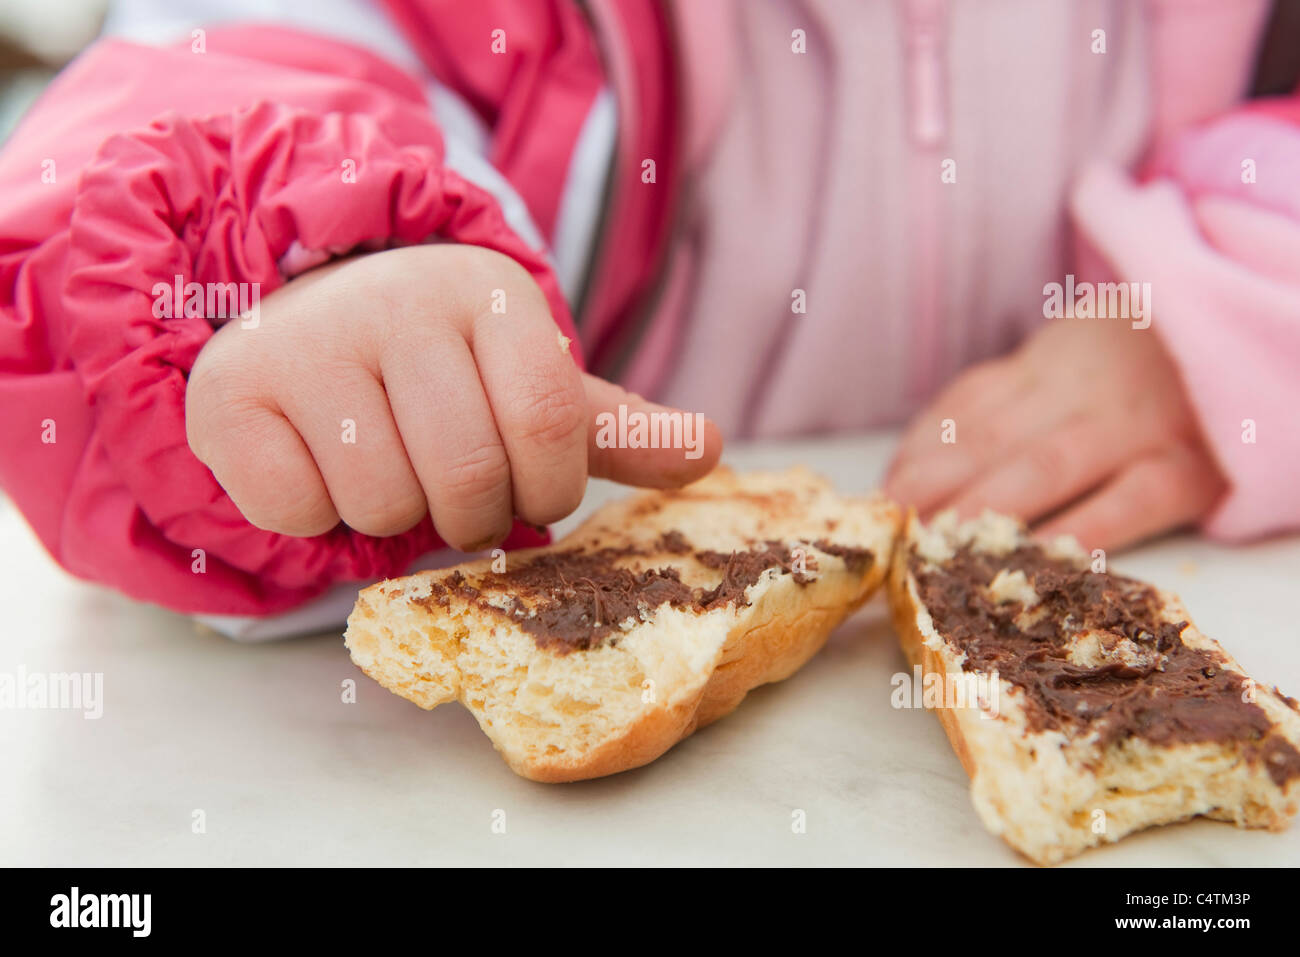 Toddler girl eating baguette with chocolate spread, cropped - Stock Image